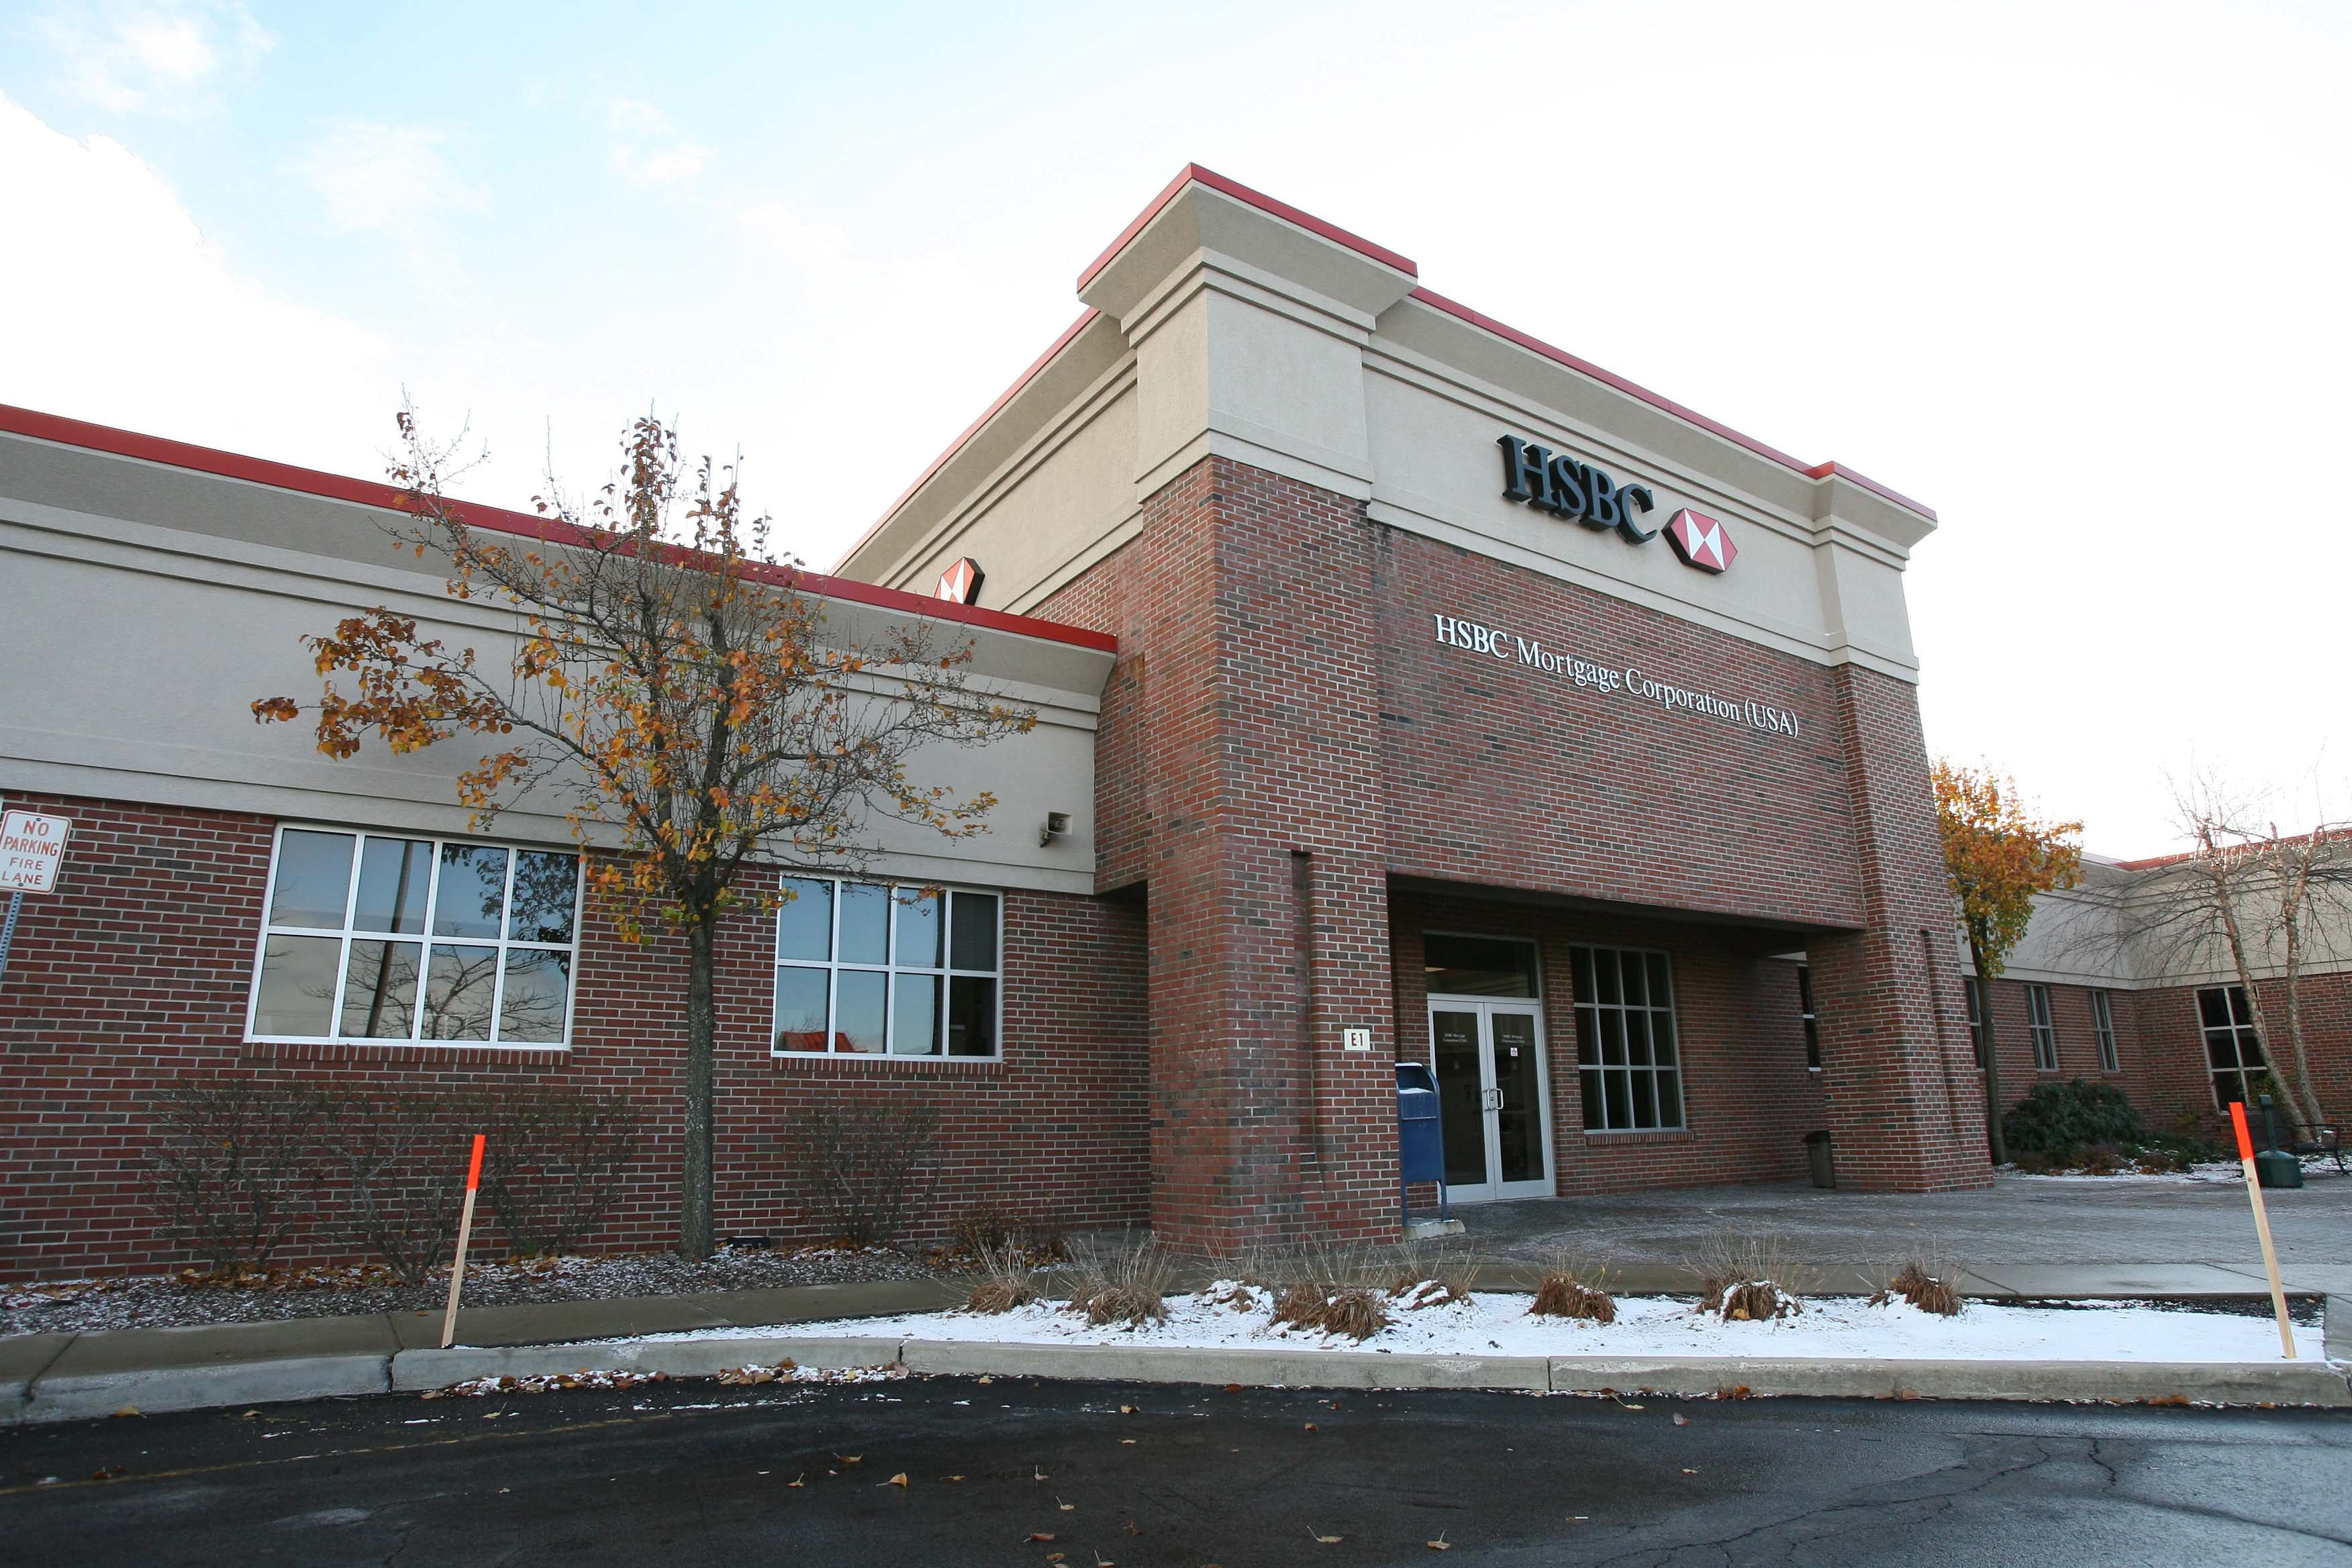 HSBC's mortgage operations center at Walden Avenue and Dick Road in Depew. (Buffalo News file photo)